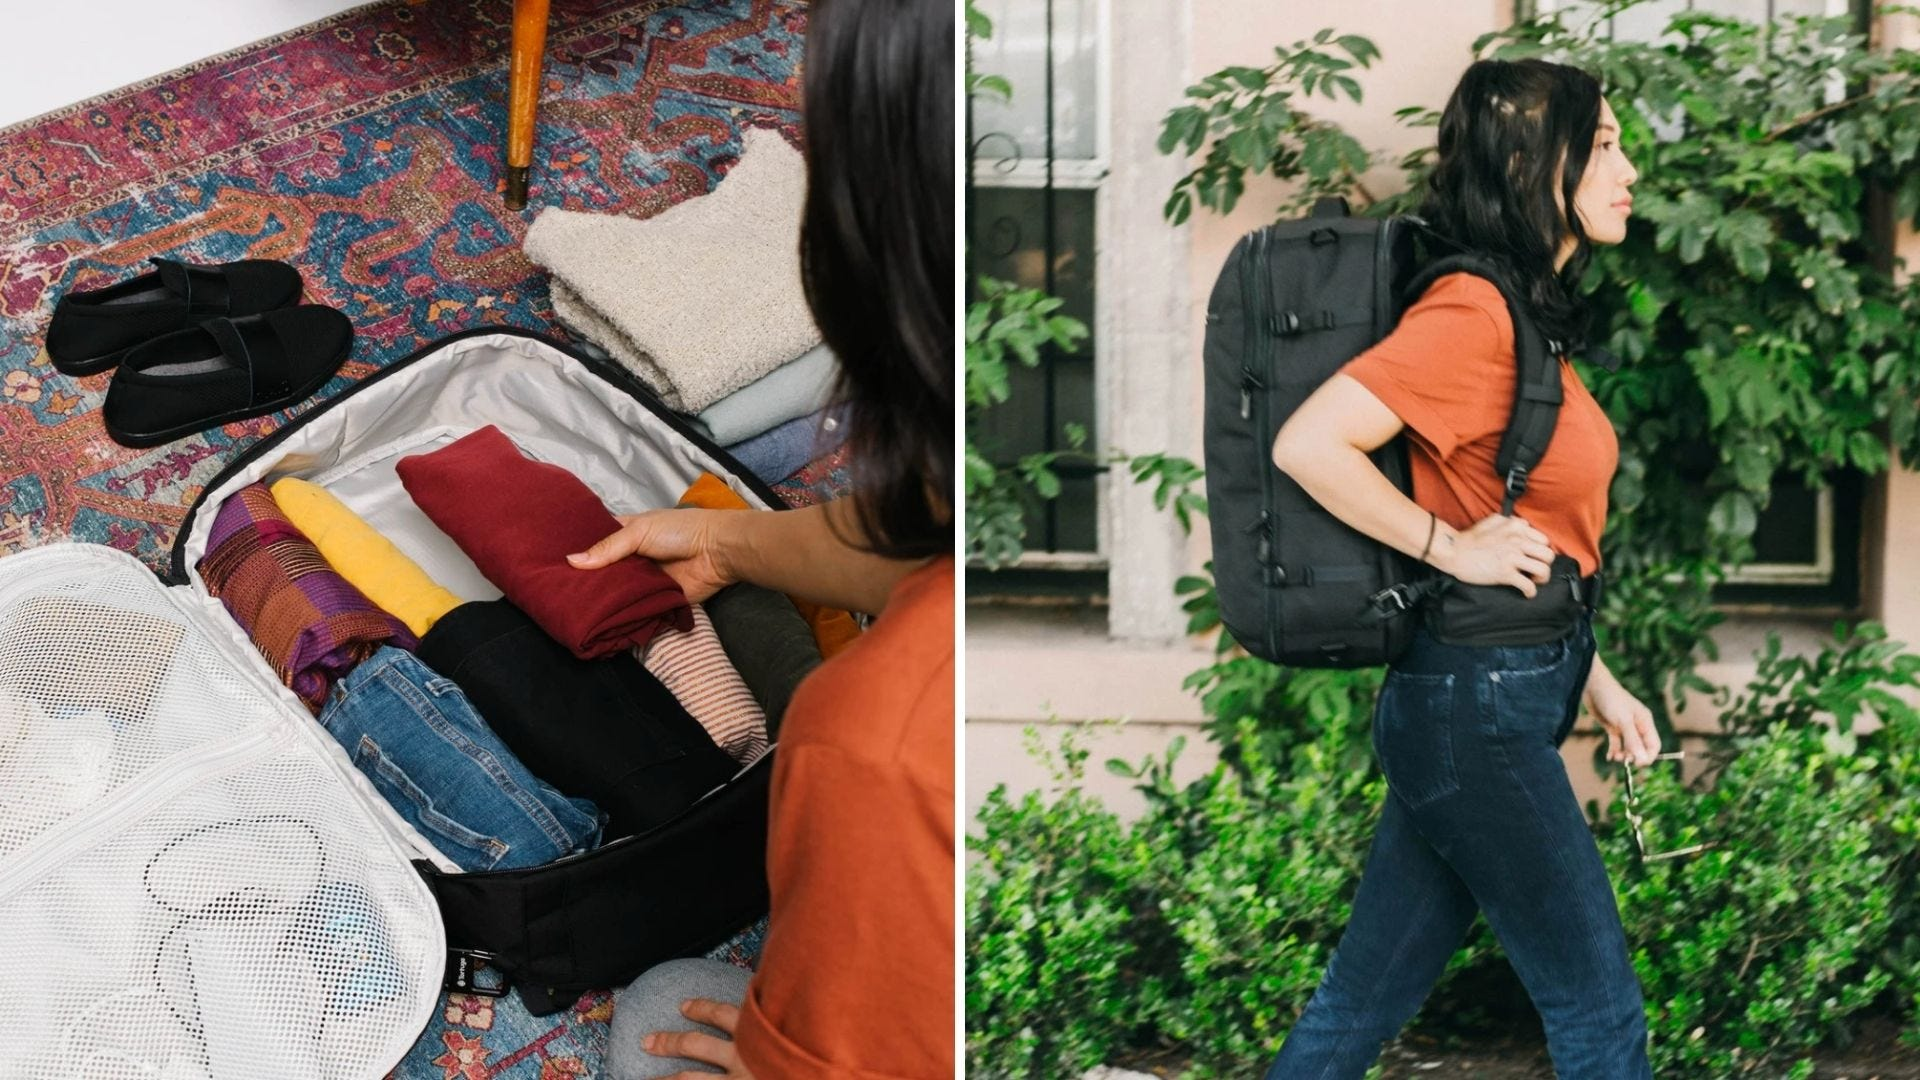 Someone packs a backpack like a suitcase and a woman wears a large travel backpack